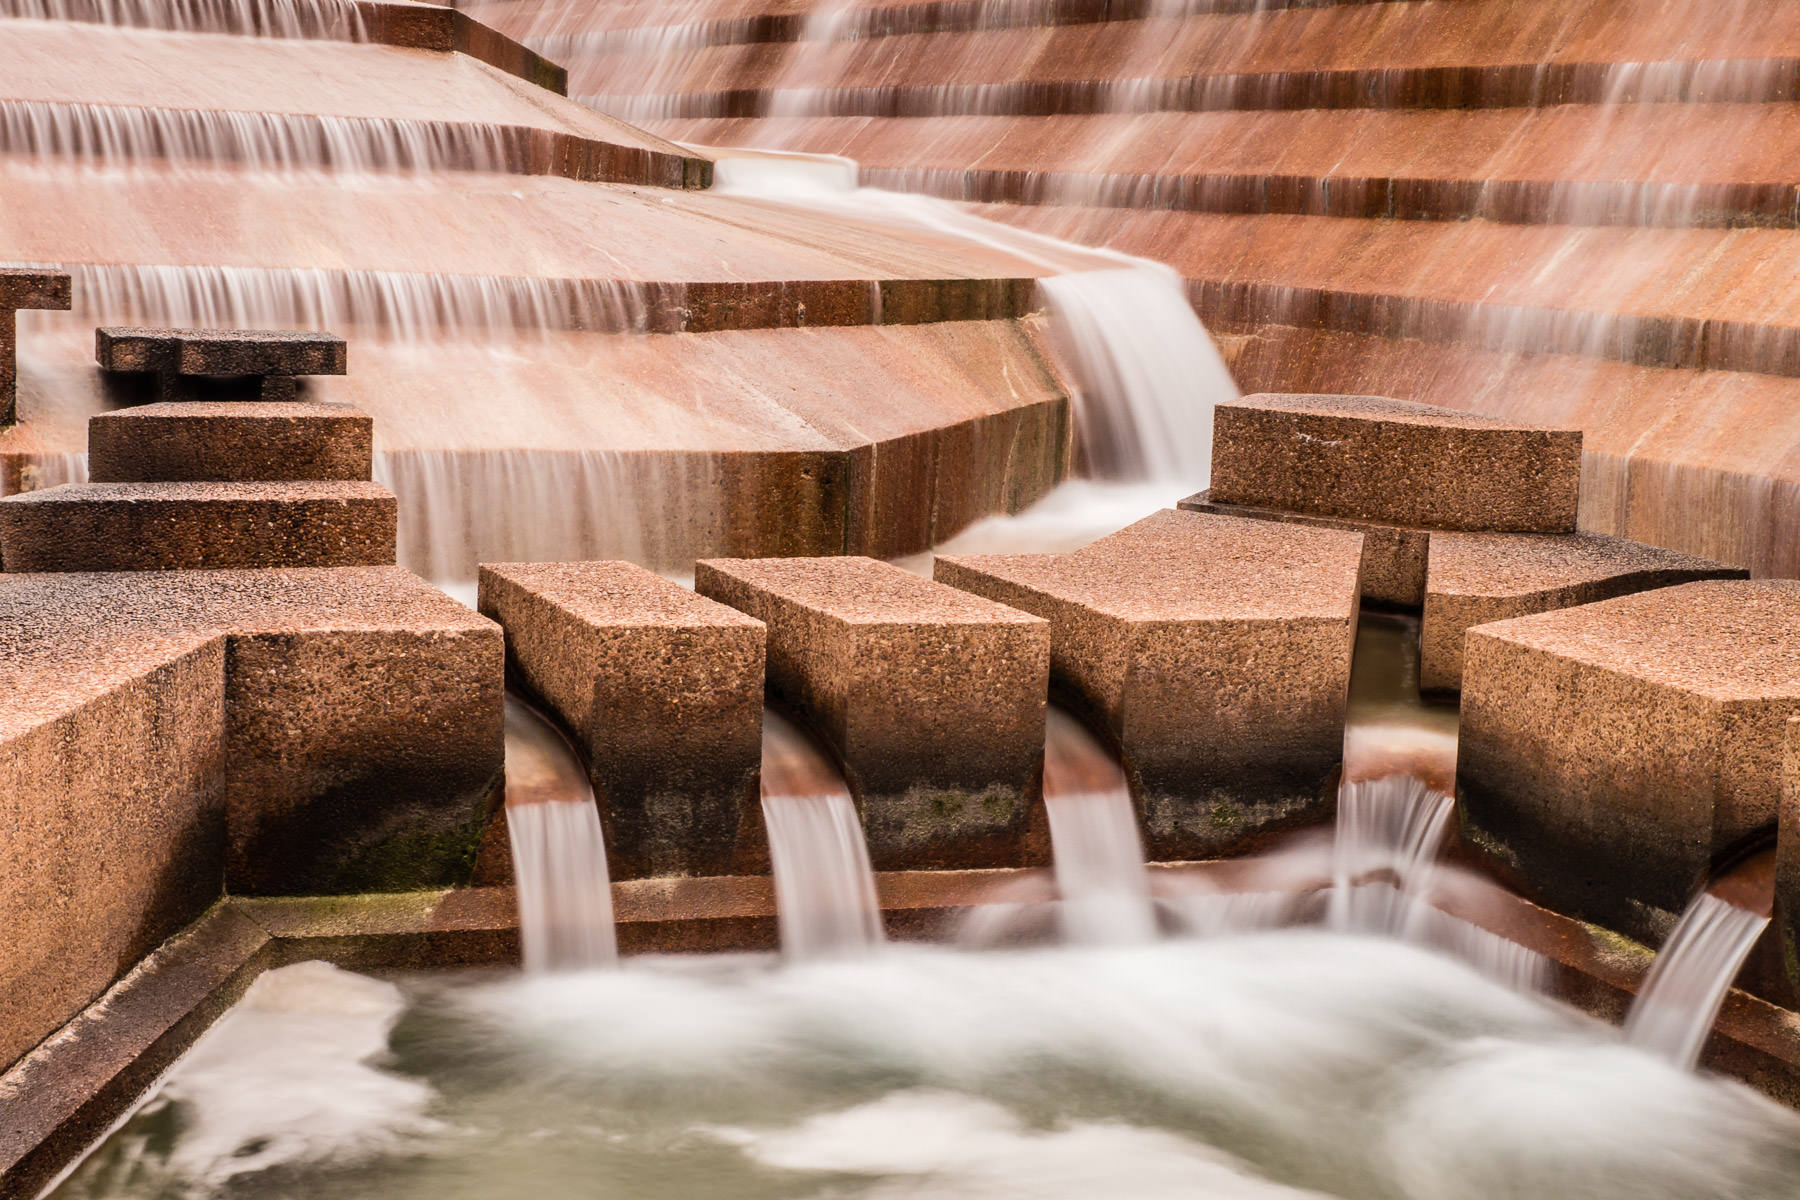 Water cascades over concrete aggregate blocks in the Active Pool at the Philip Johnson-designed Fort Worth Water Gardens in the south end of Downtown Fort Worth, Texas.